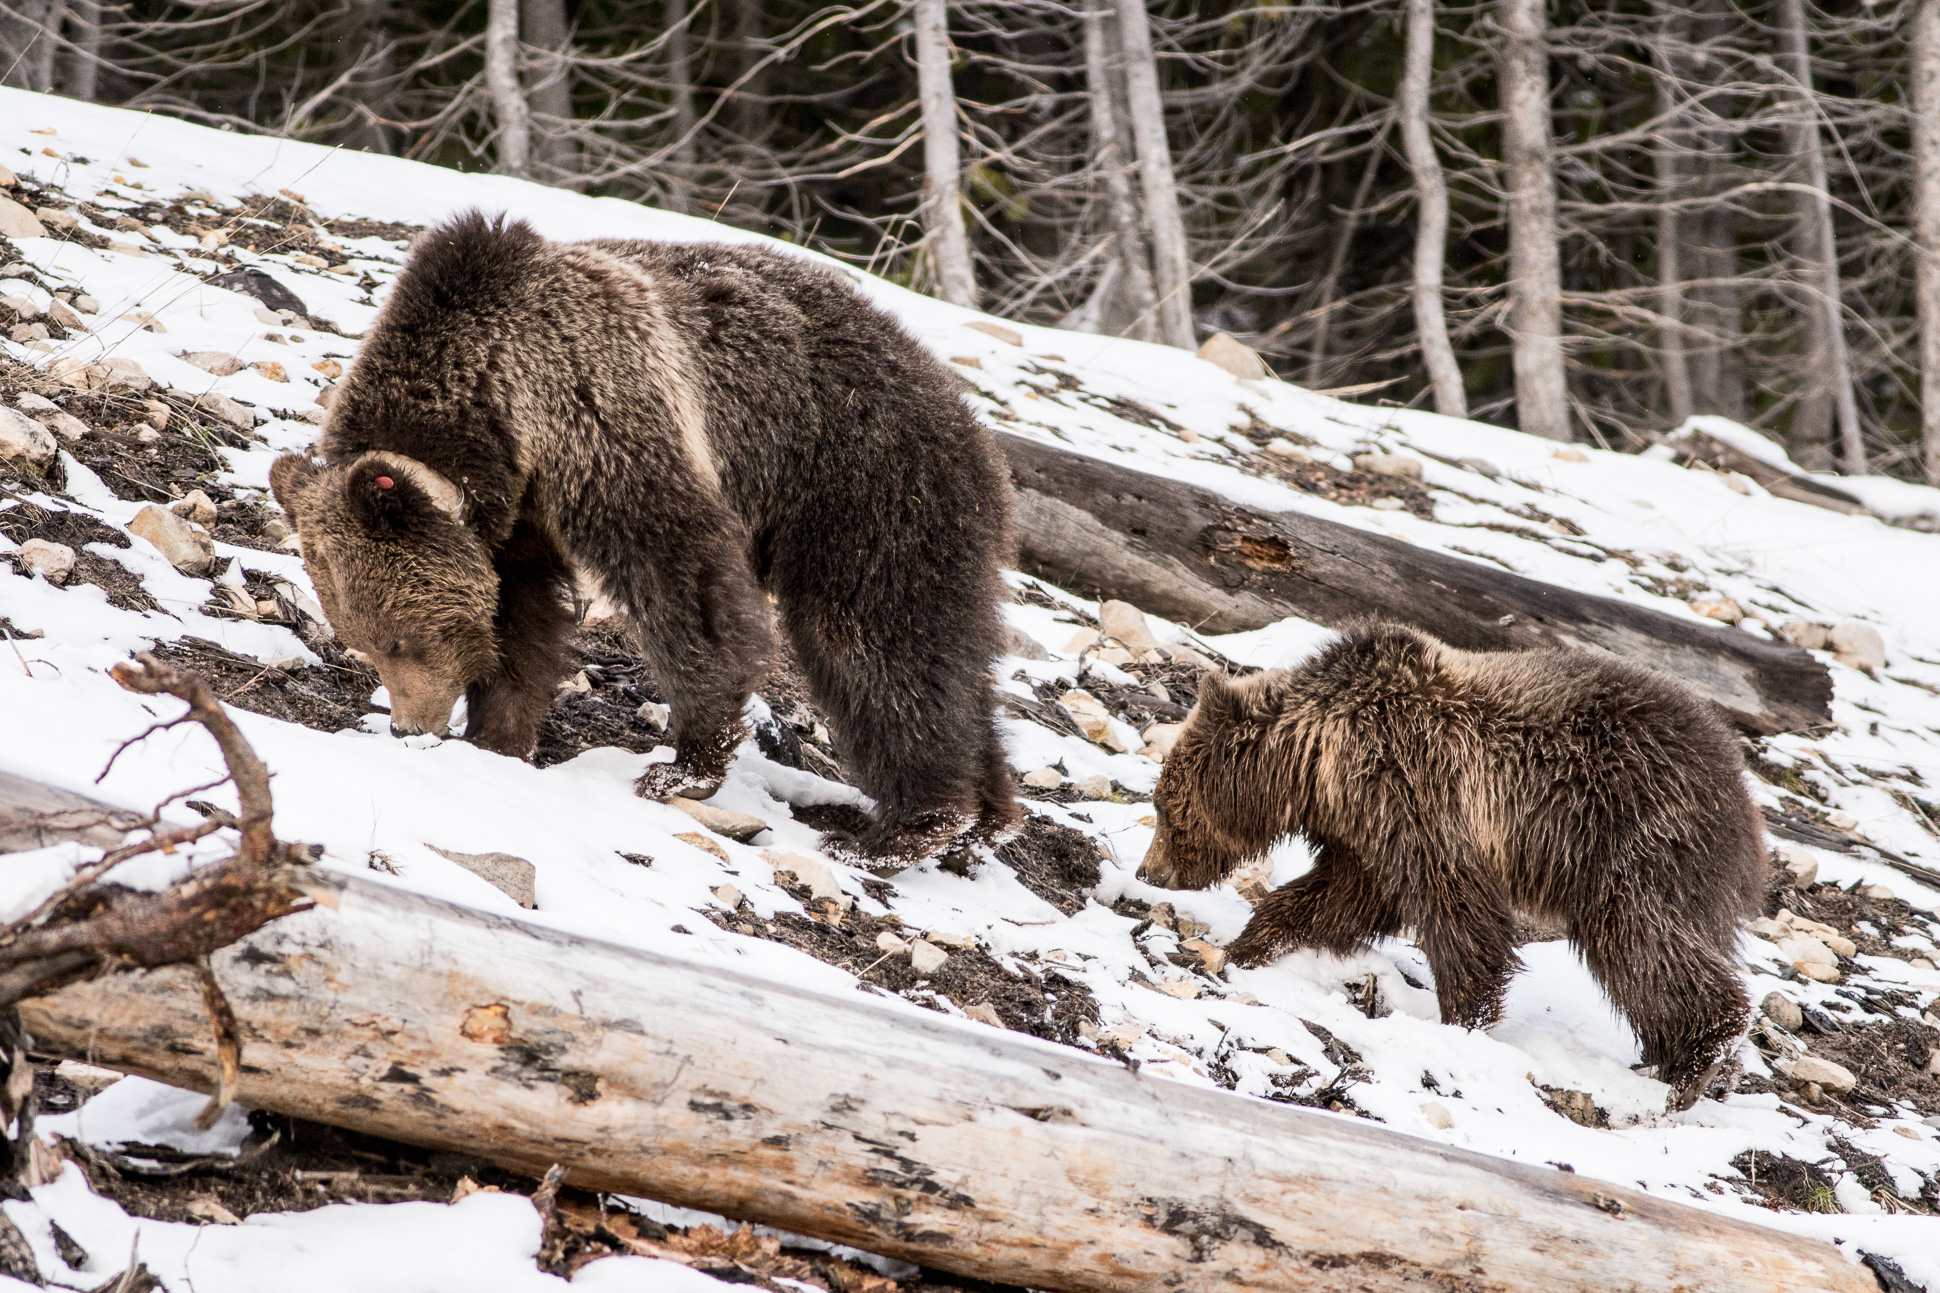 Grizzly Bear and cub Valley Girl near Roaring Mountain Yellowstone National Park WY-06156